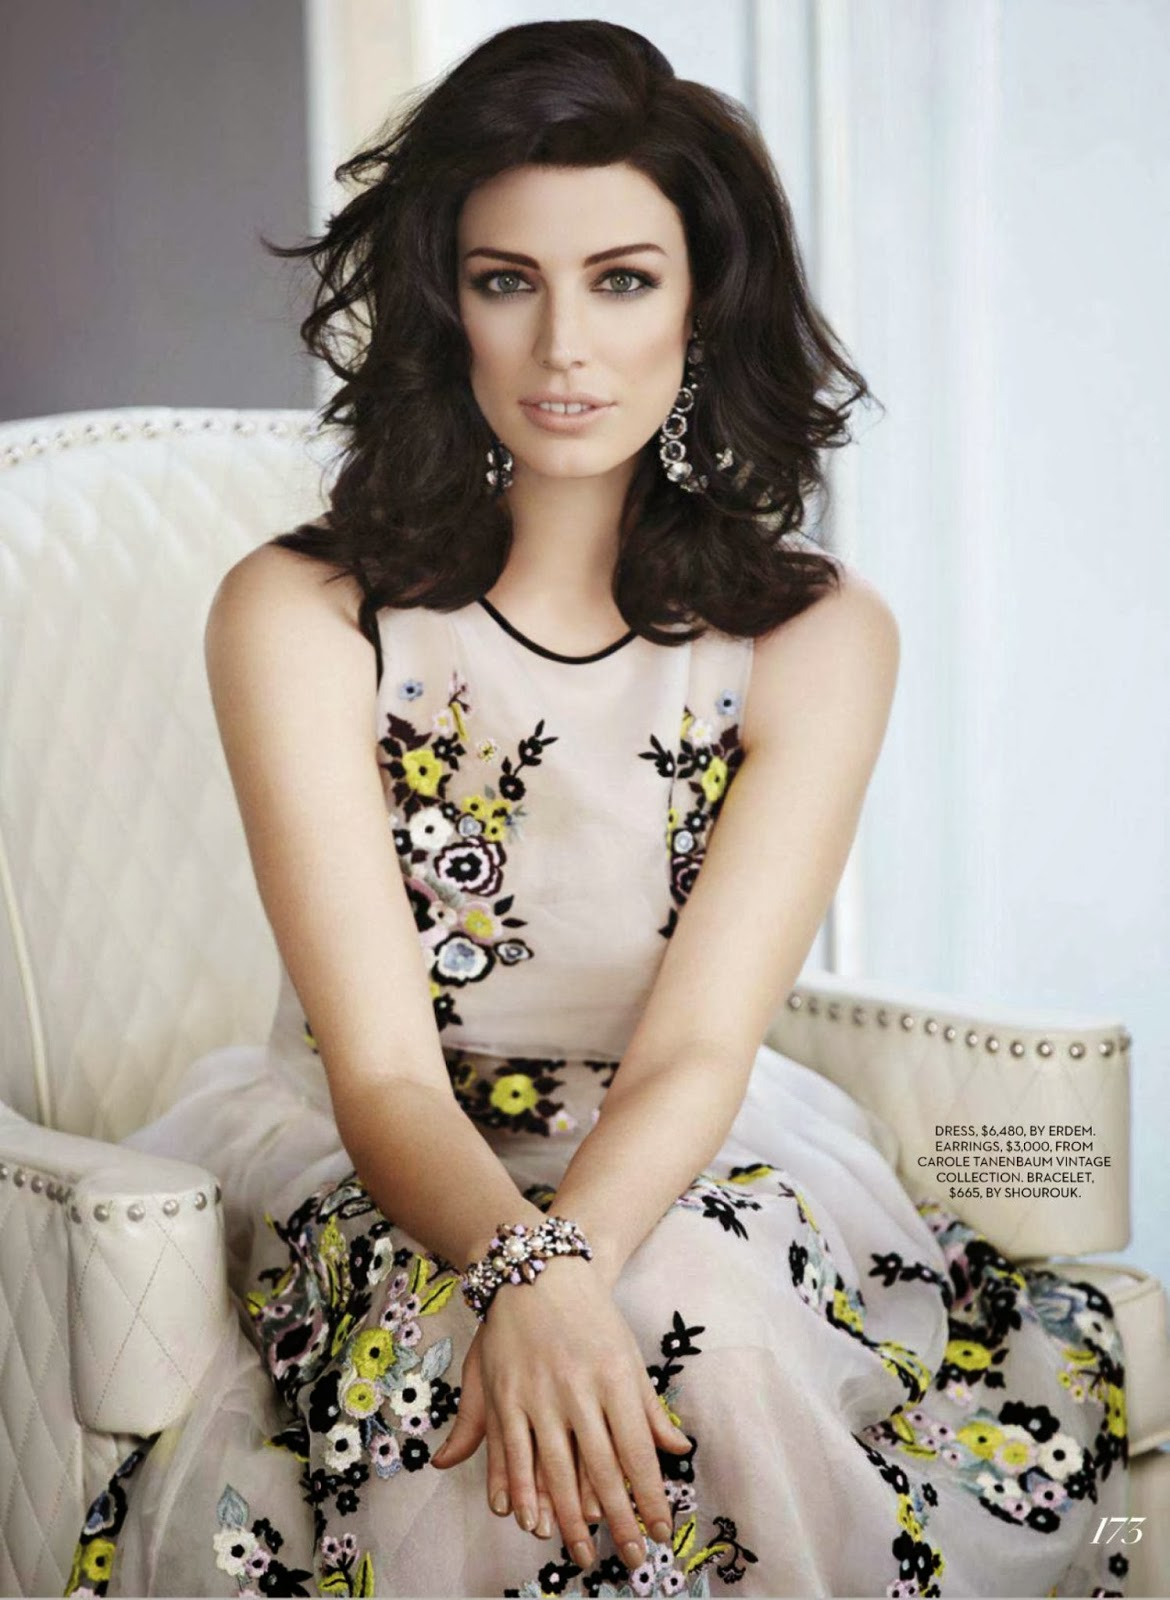 Jessica Paré HQ Pictures Fashion Canada Magazine Photoshoot March 2014